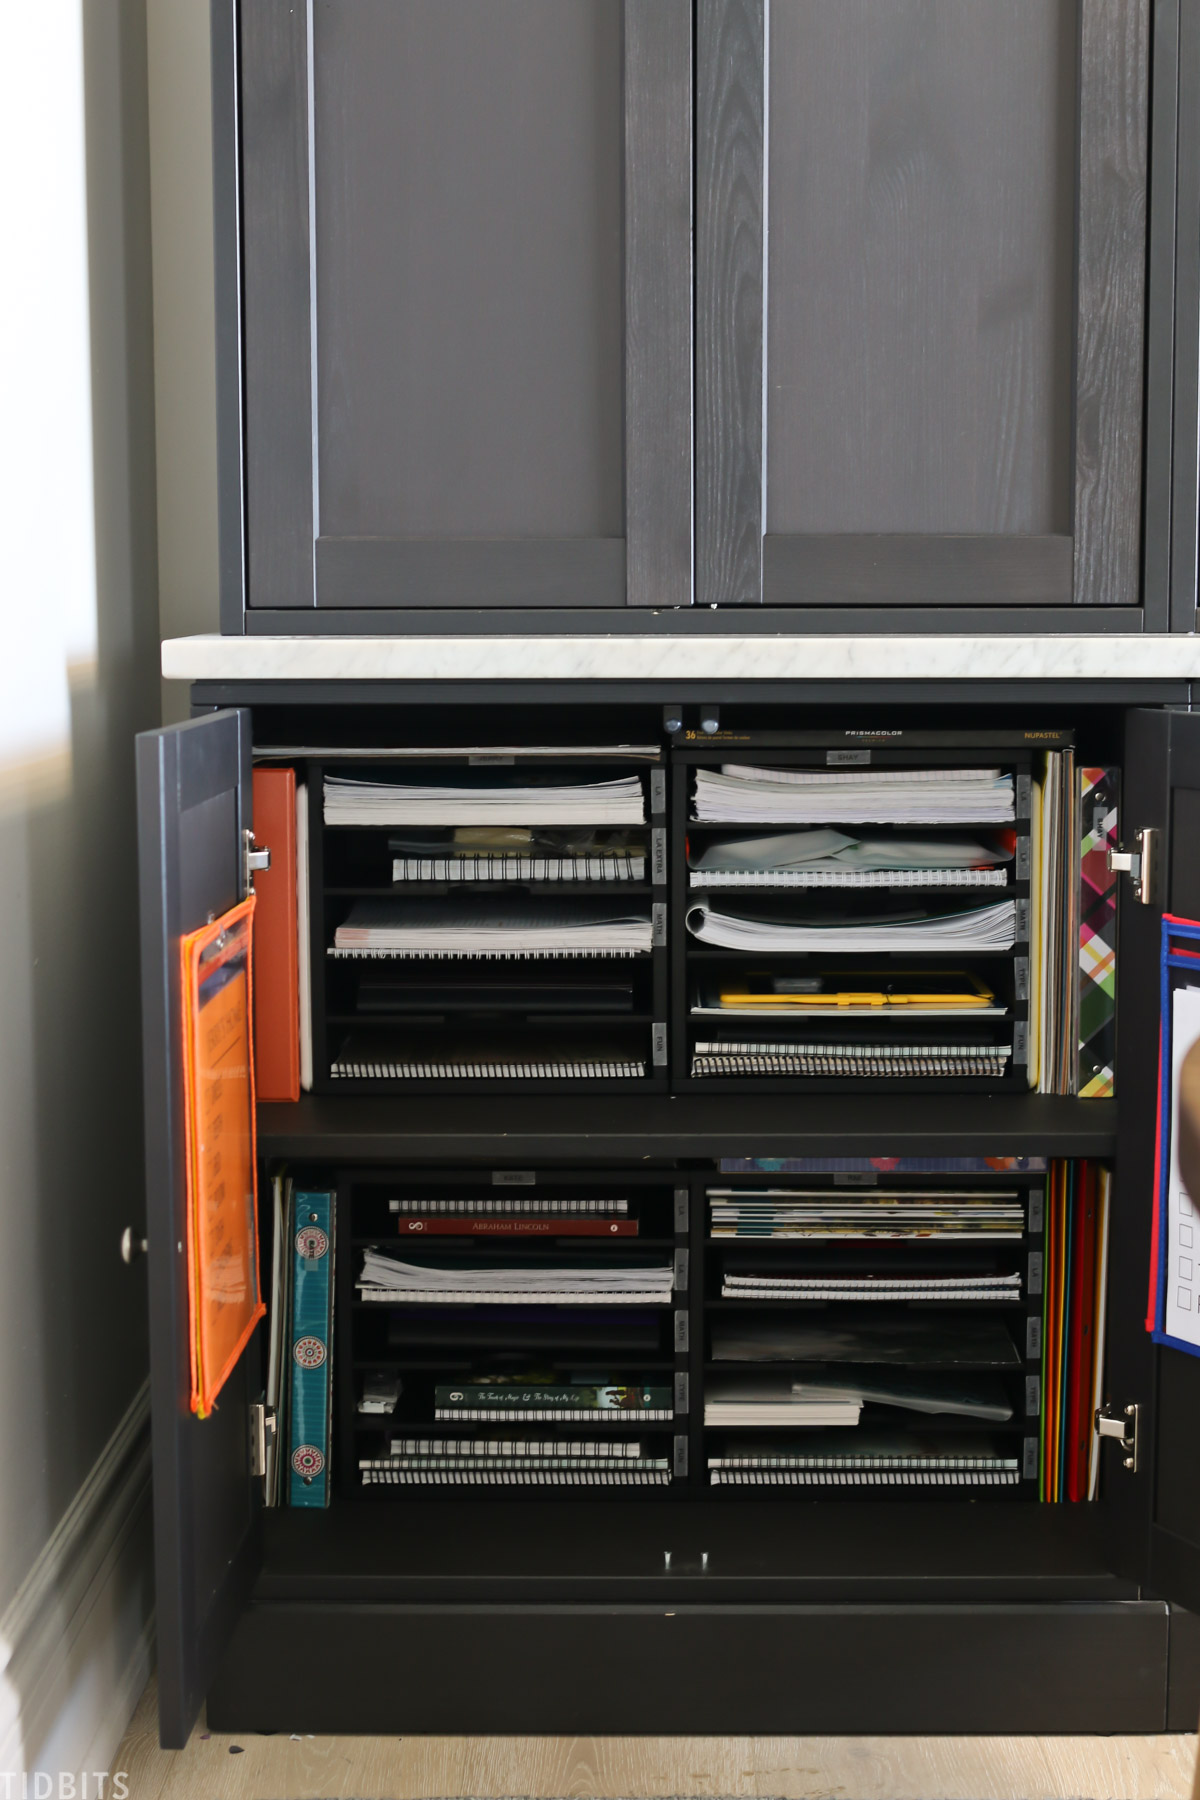 lower storage cabinets showing file organizers filled with paper, notebooks, and binders